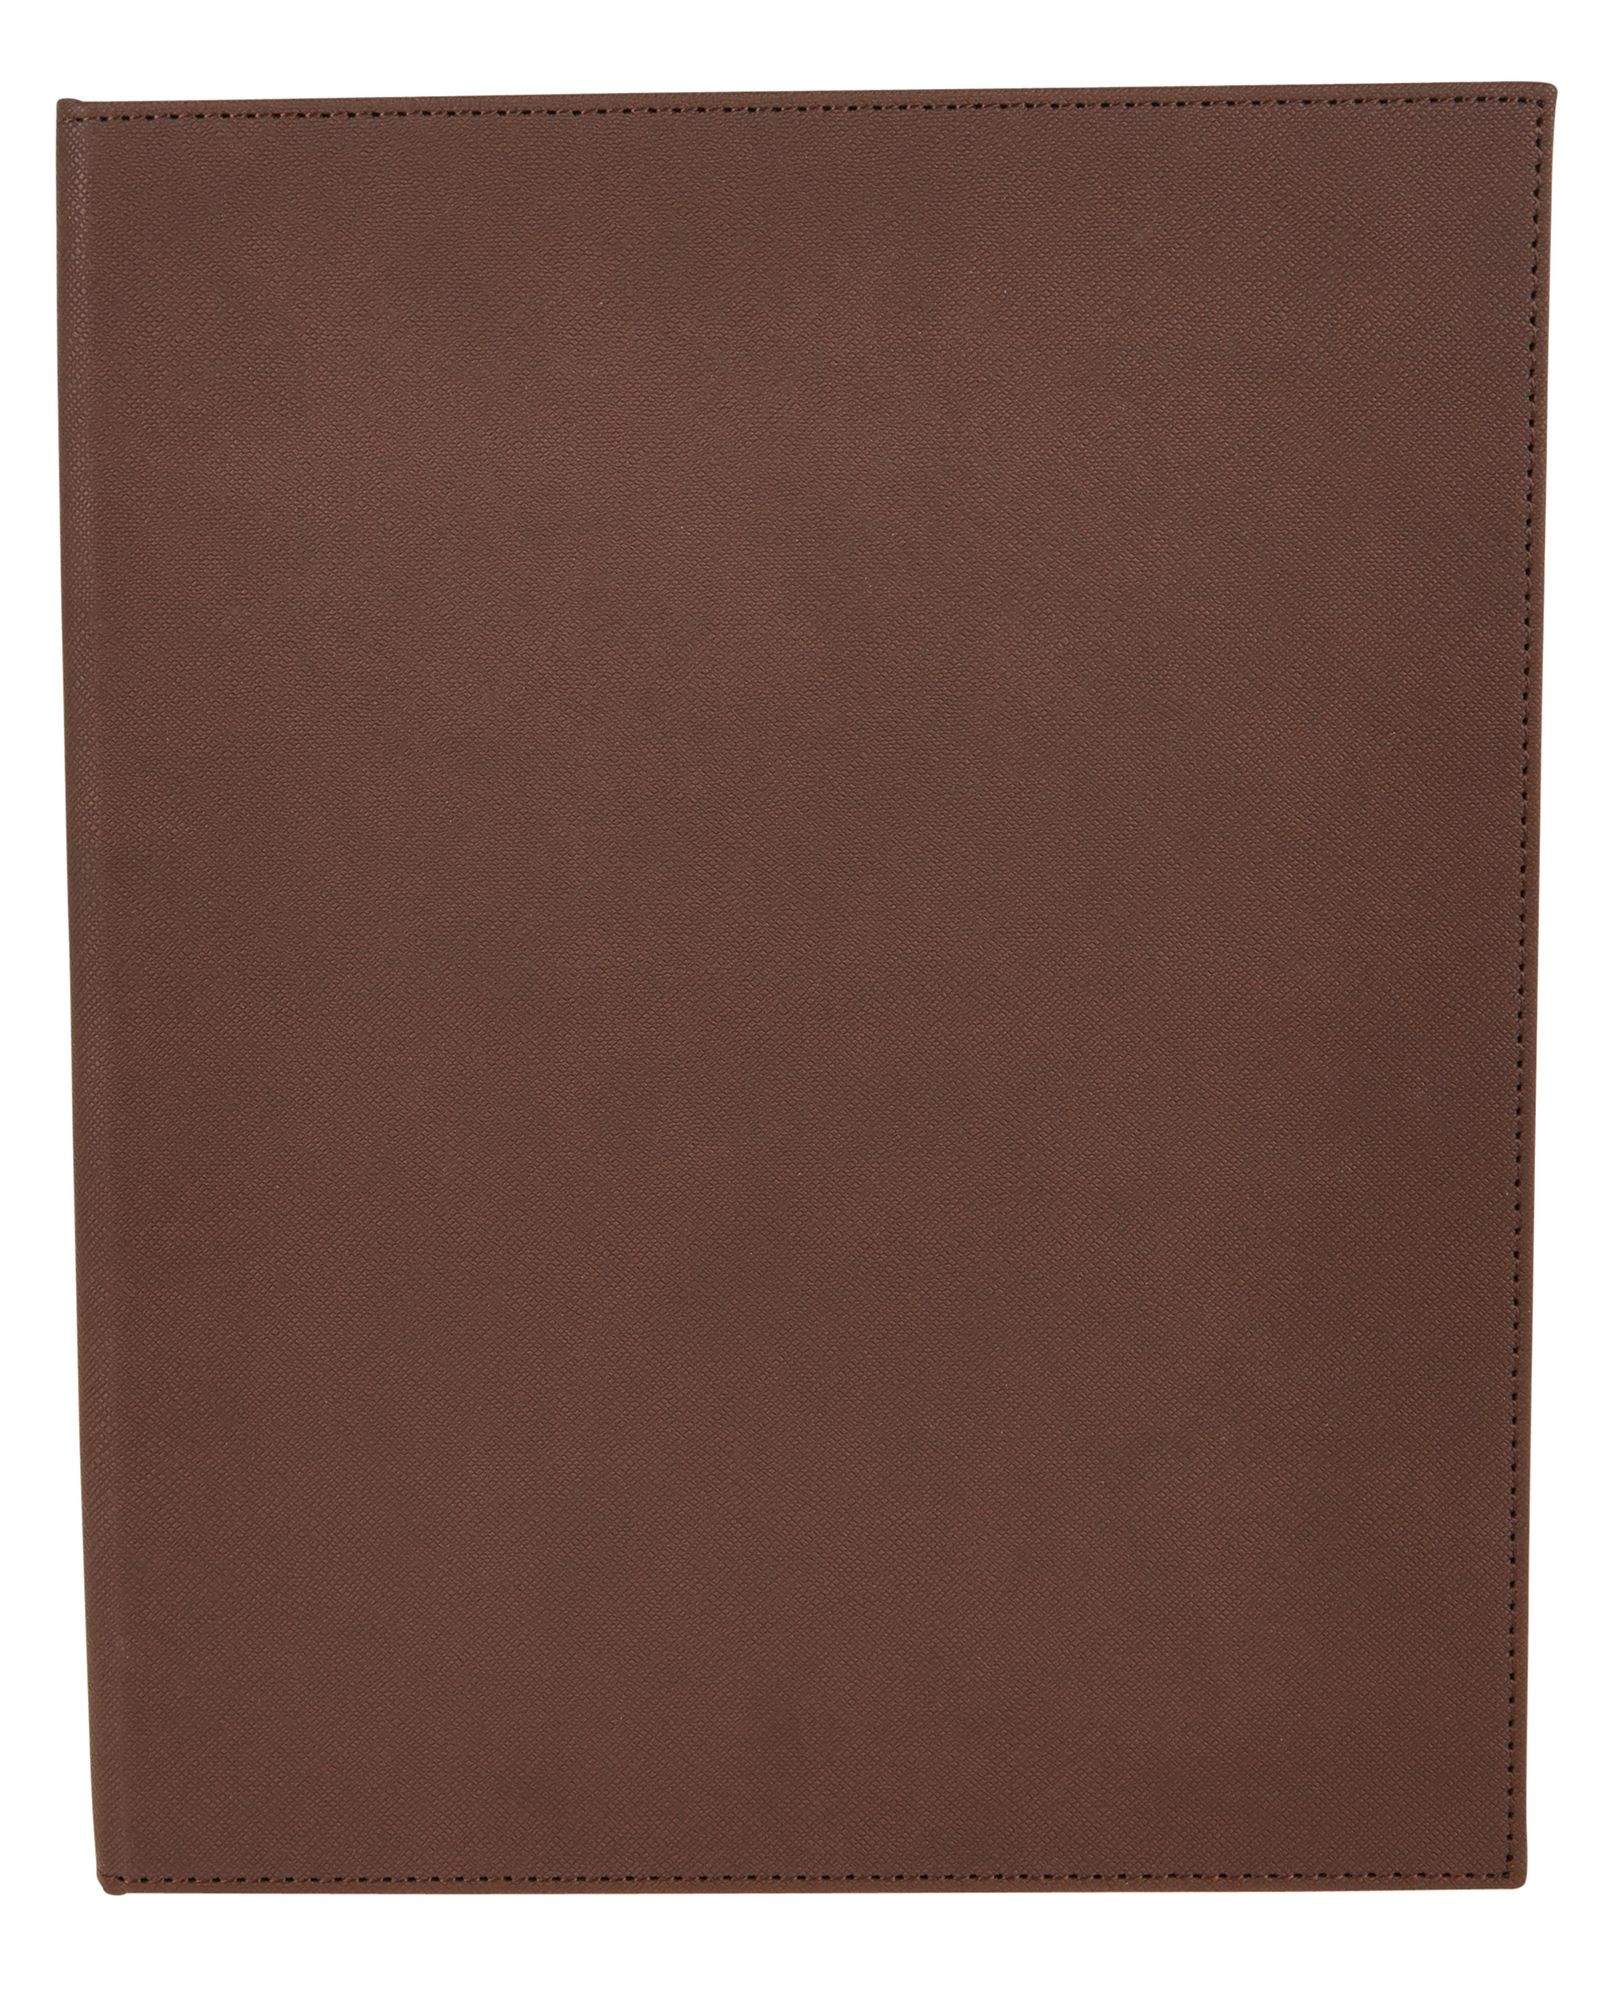 "Winco LMD-814BN 8-1/2"" x 14"" Brown Leatherette Two Panel Menu Cover"